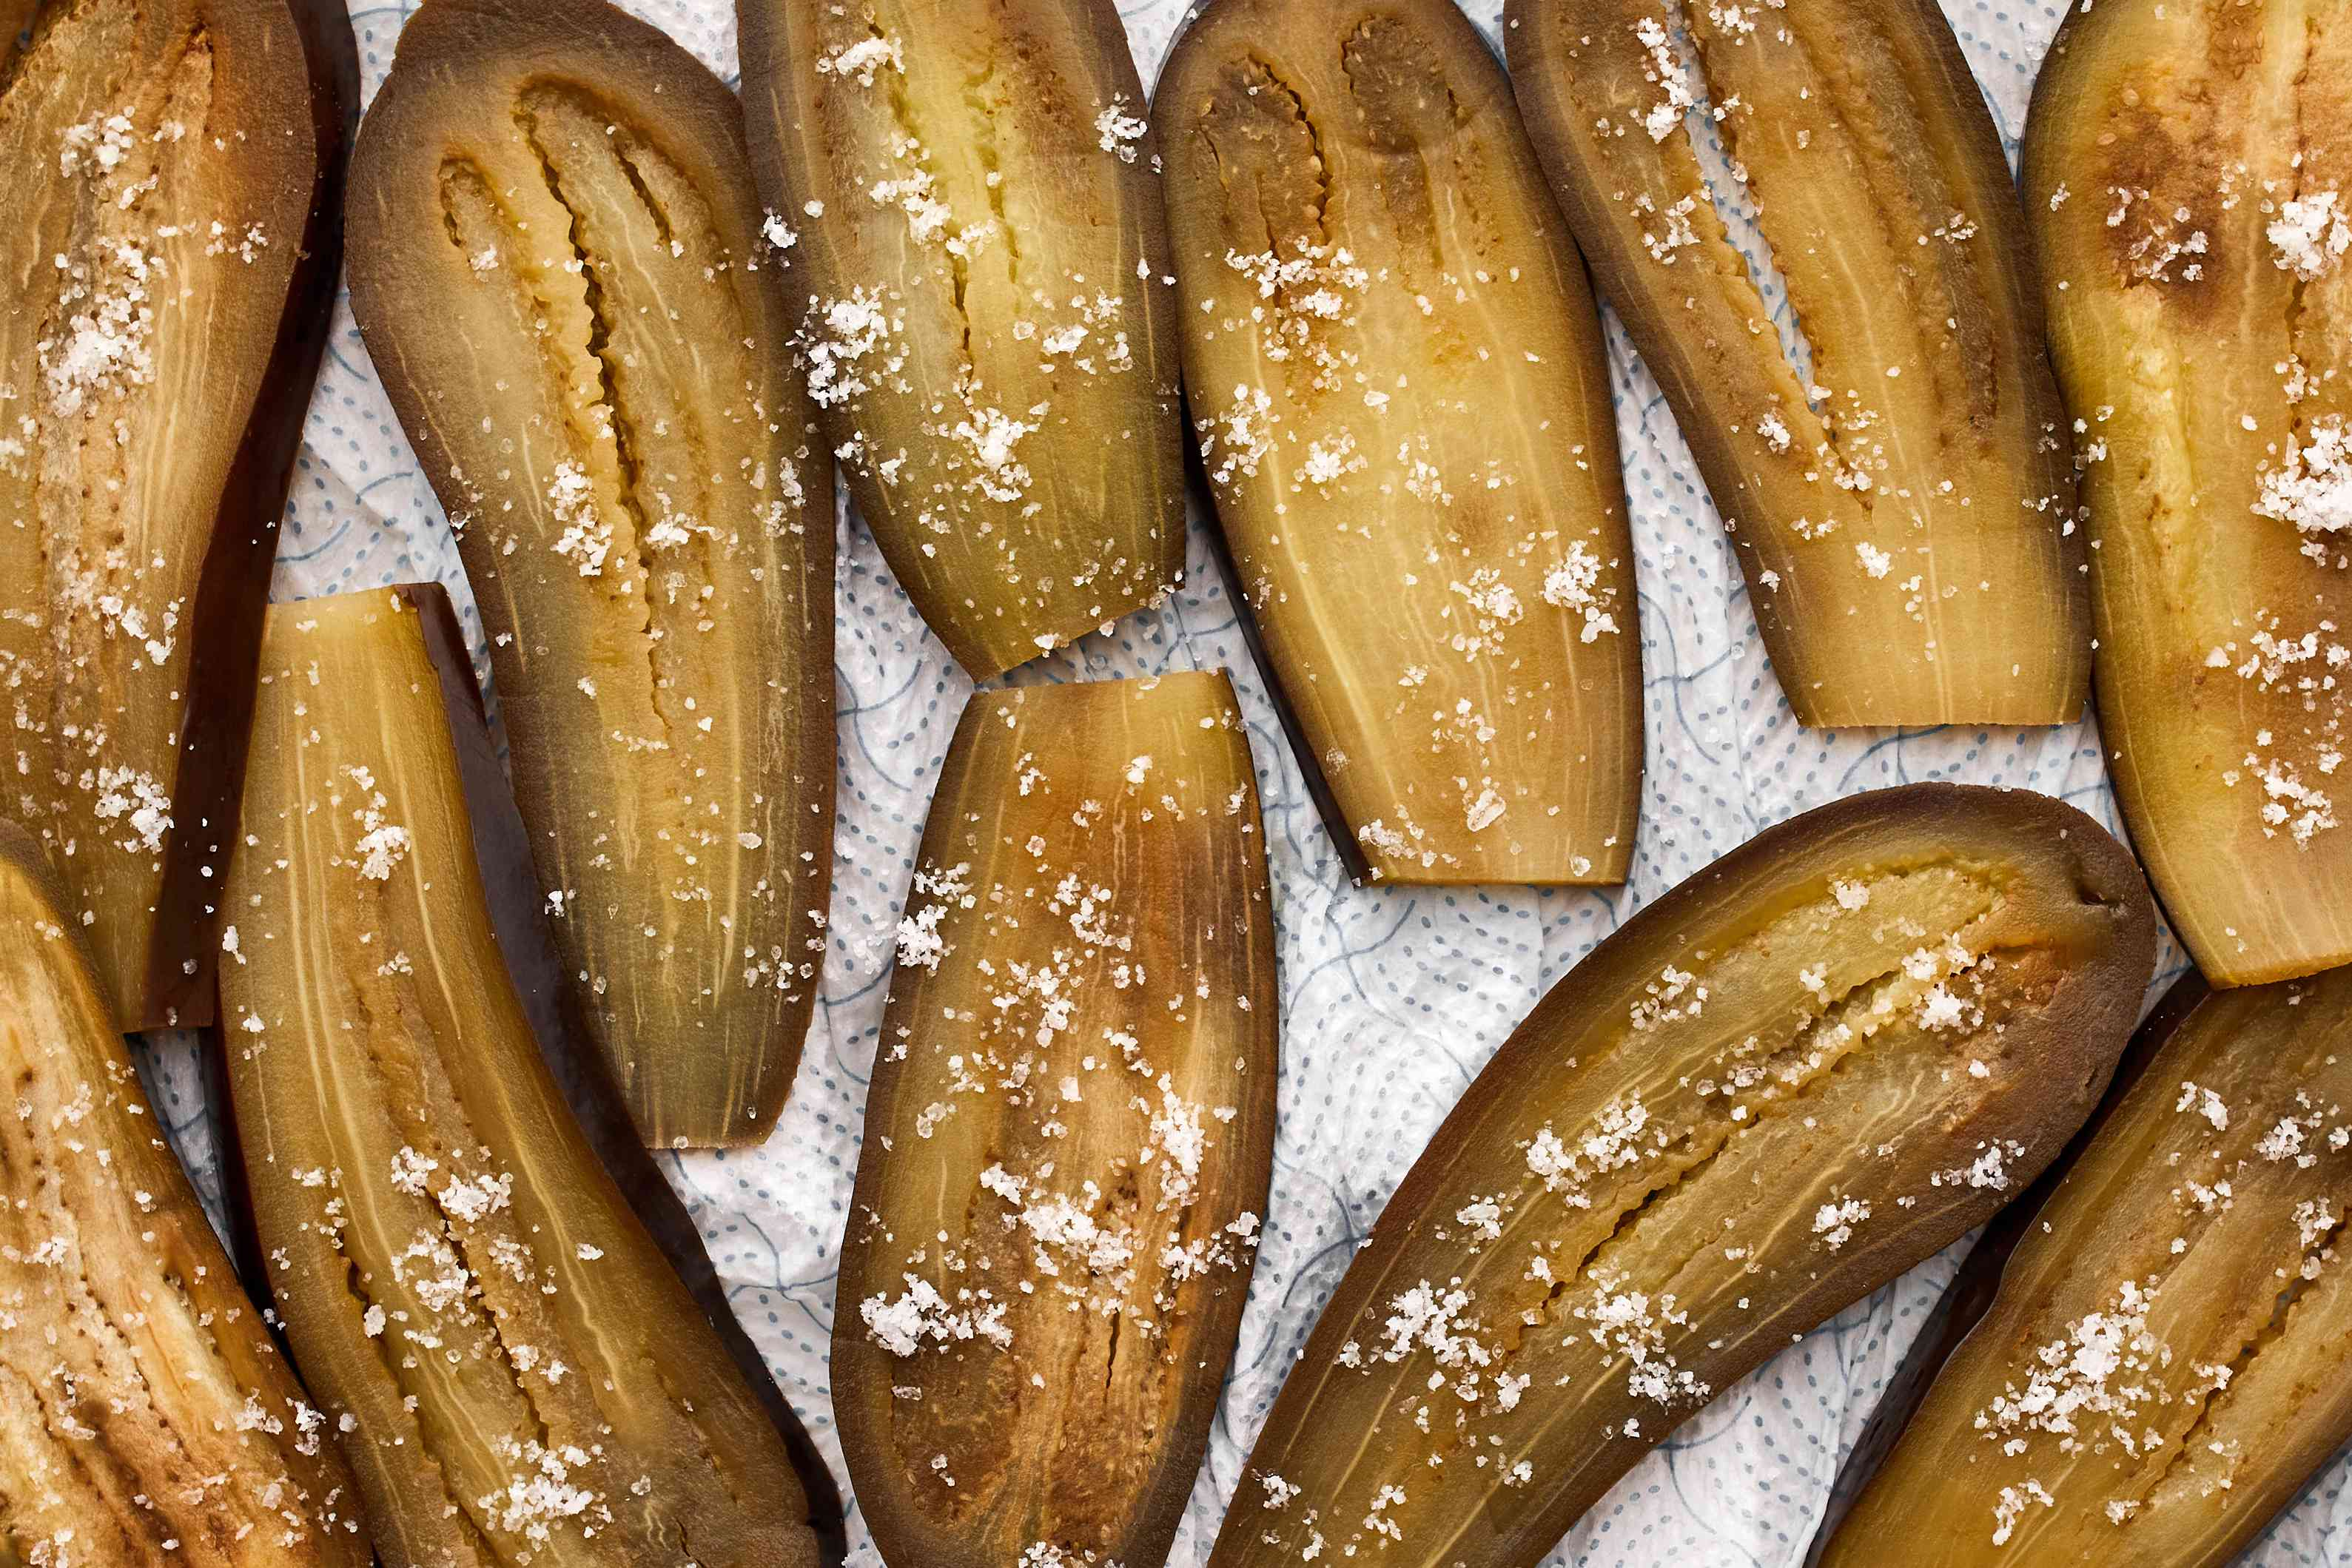 Sprinkle eggplant with 2 teaspoons of salt and place a layer of paper towels